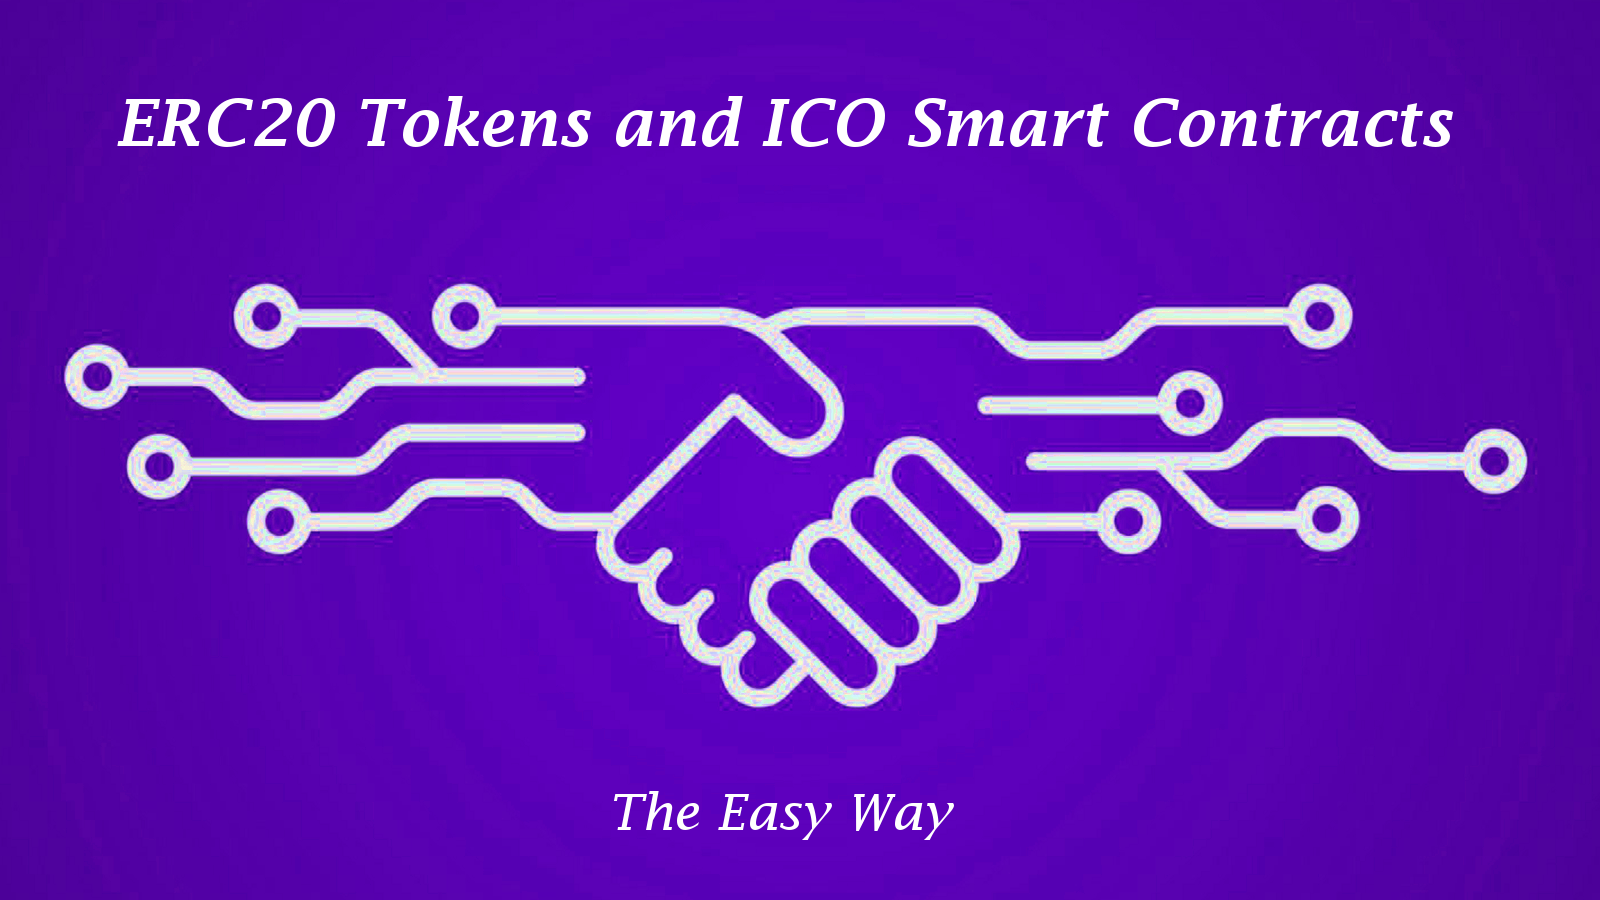 6 Steps to ERC20 Tokens and ICO Smart Contracts - Coinmonks - Medium